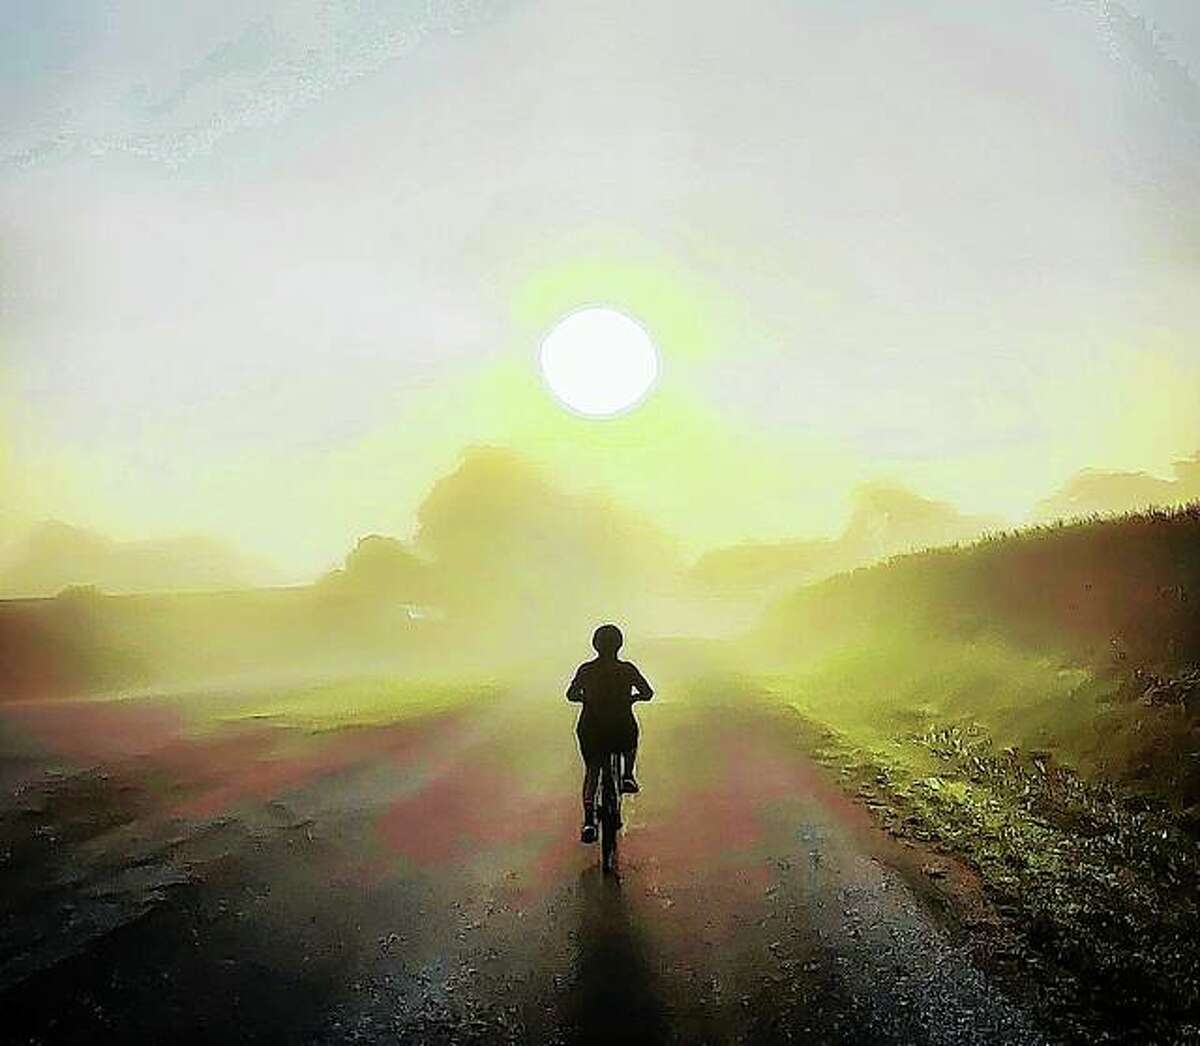 A lone bicyclist takes an early morning journey along a country road in Morgan County.